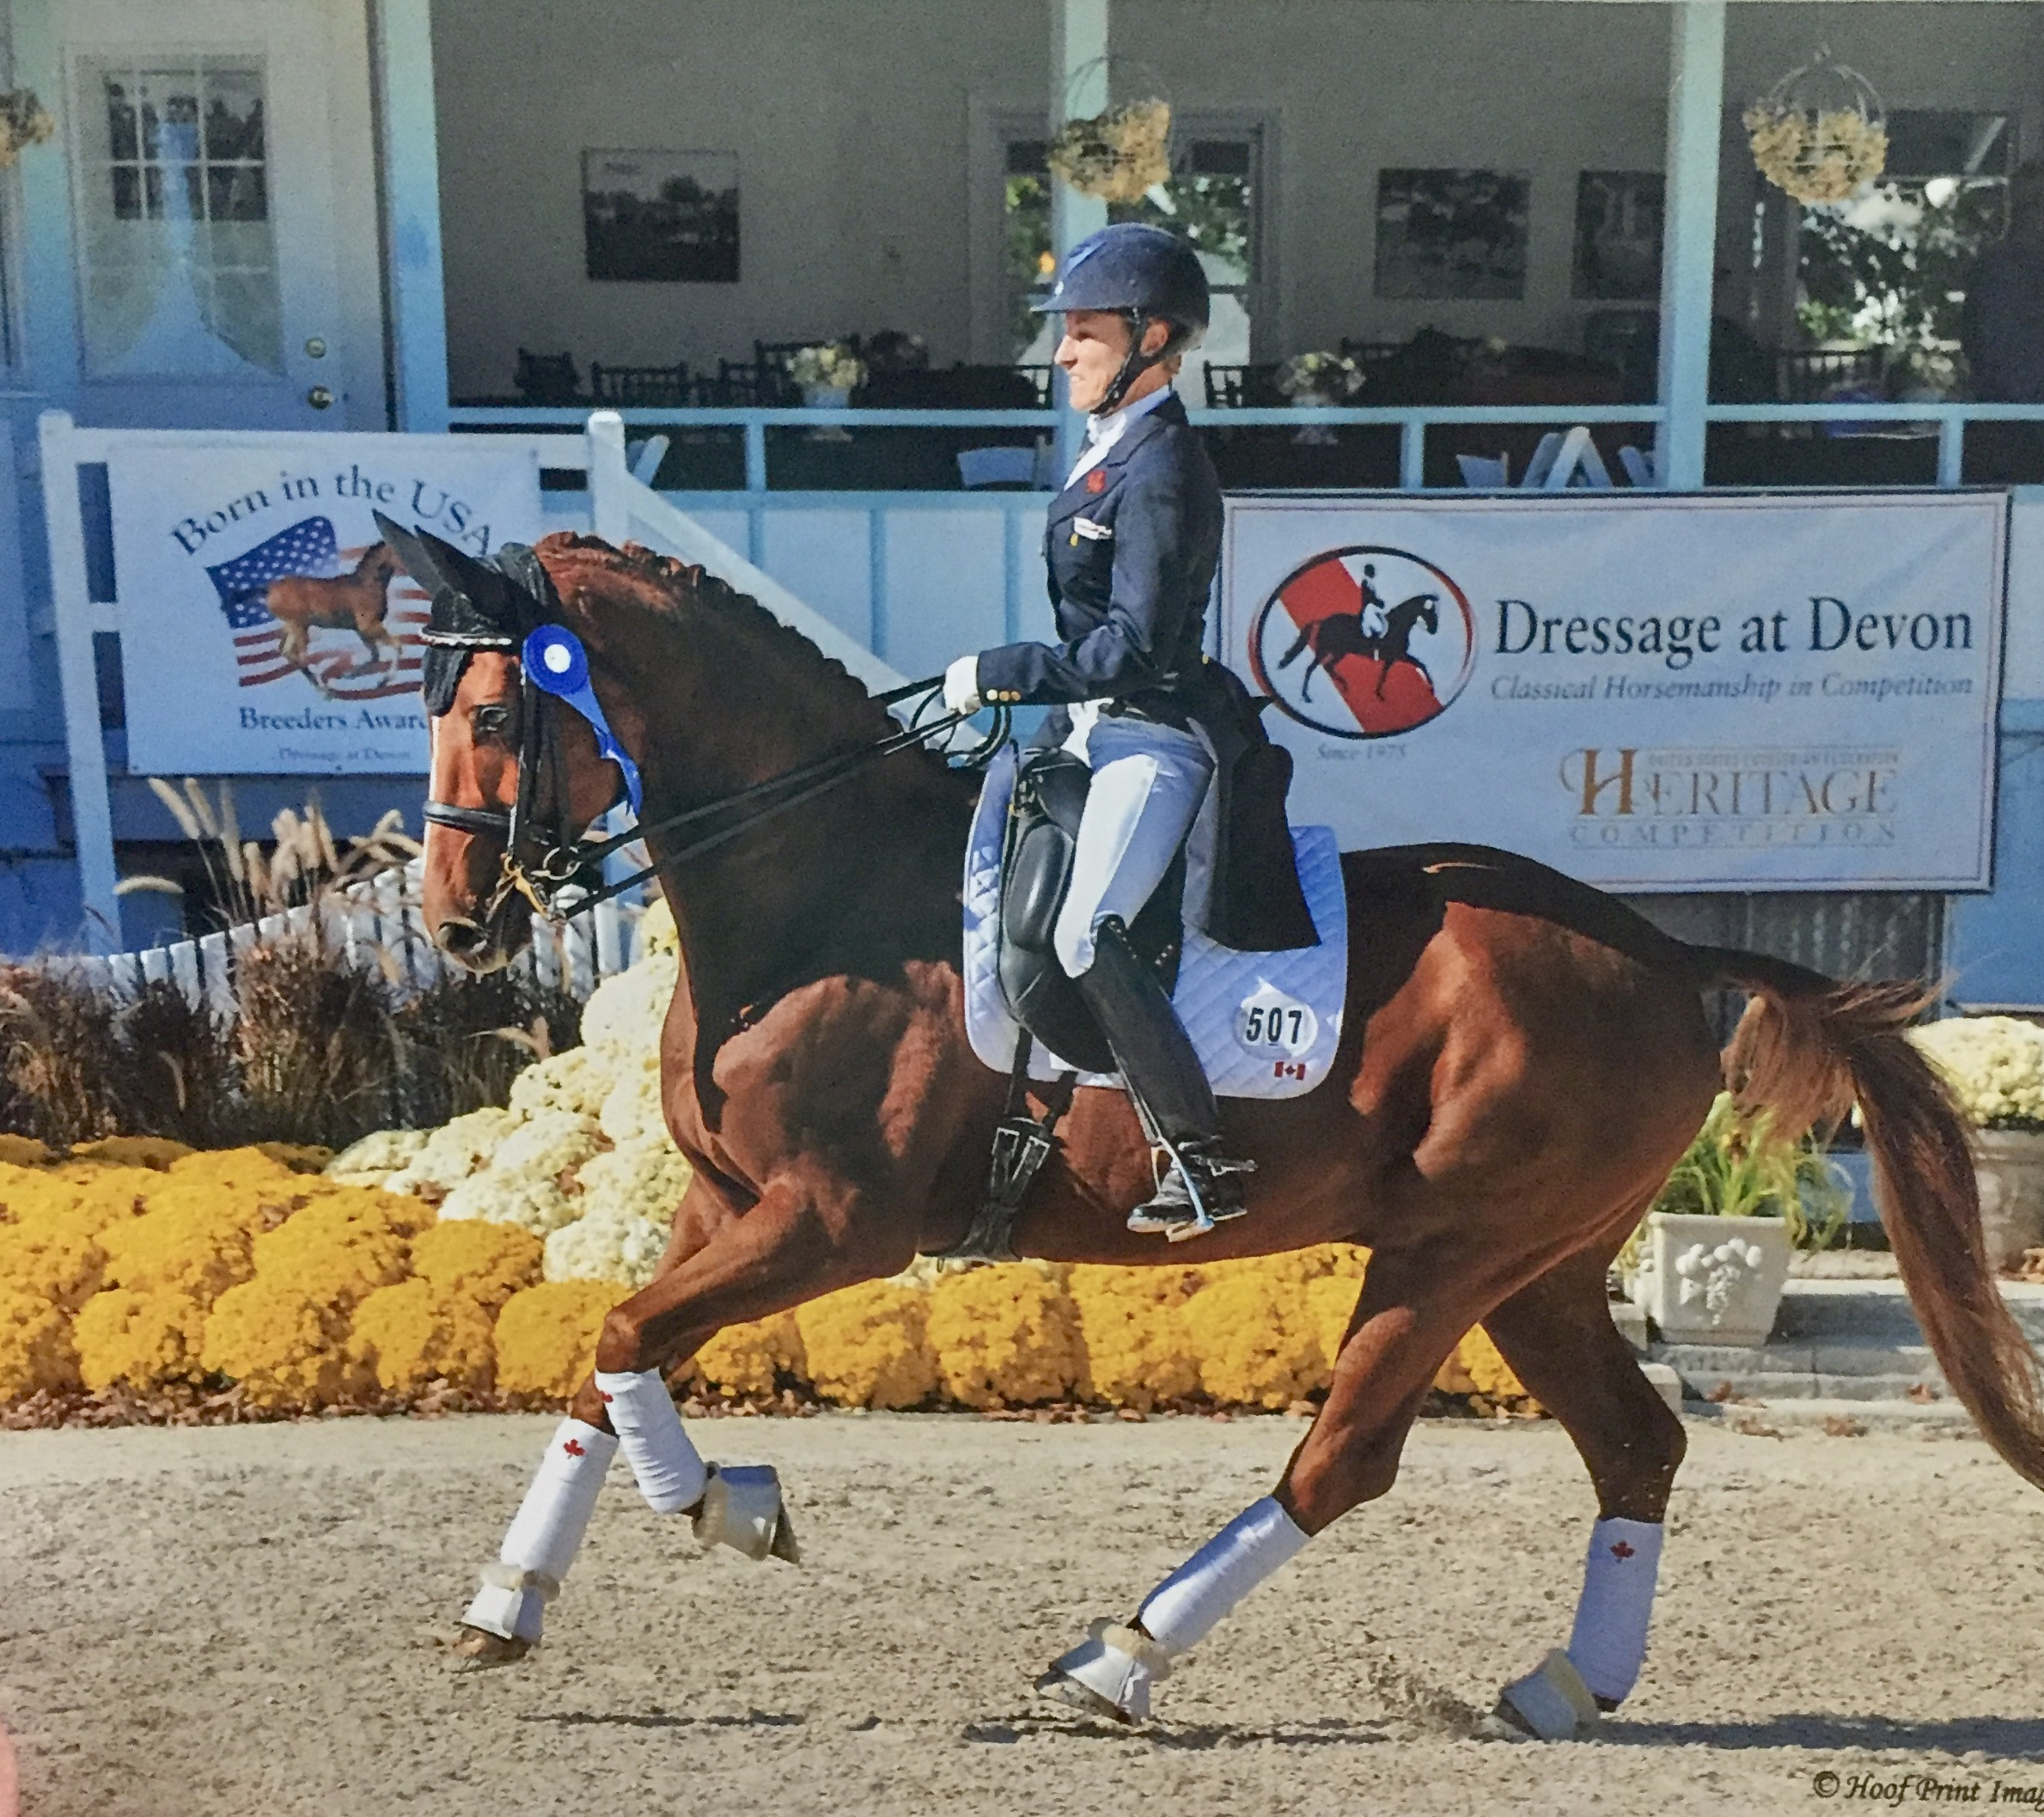 Lori Bell at the Dressage at Devon